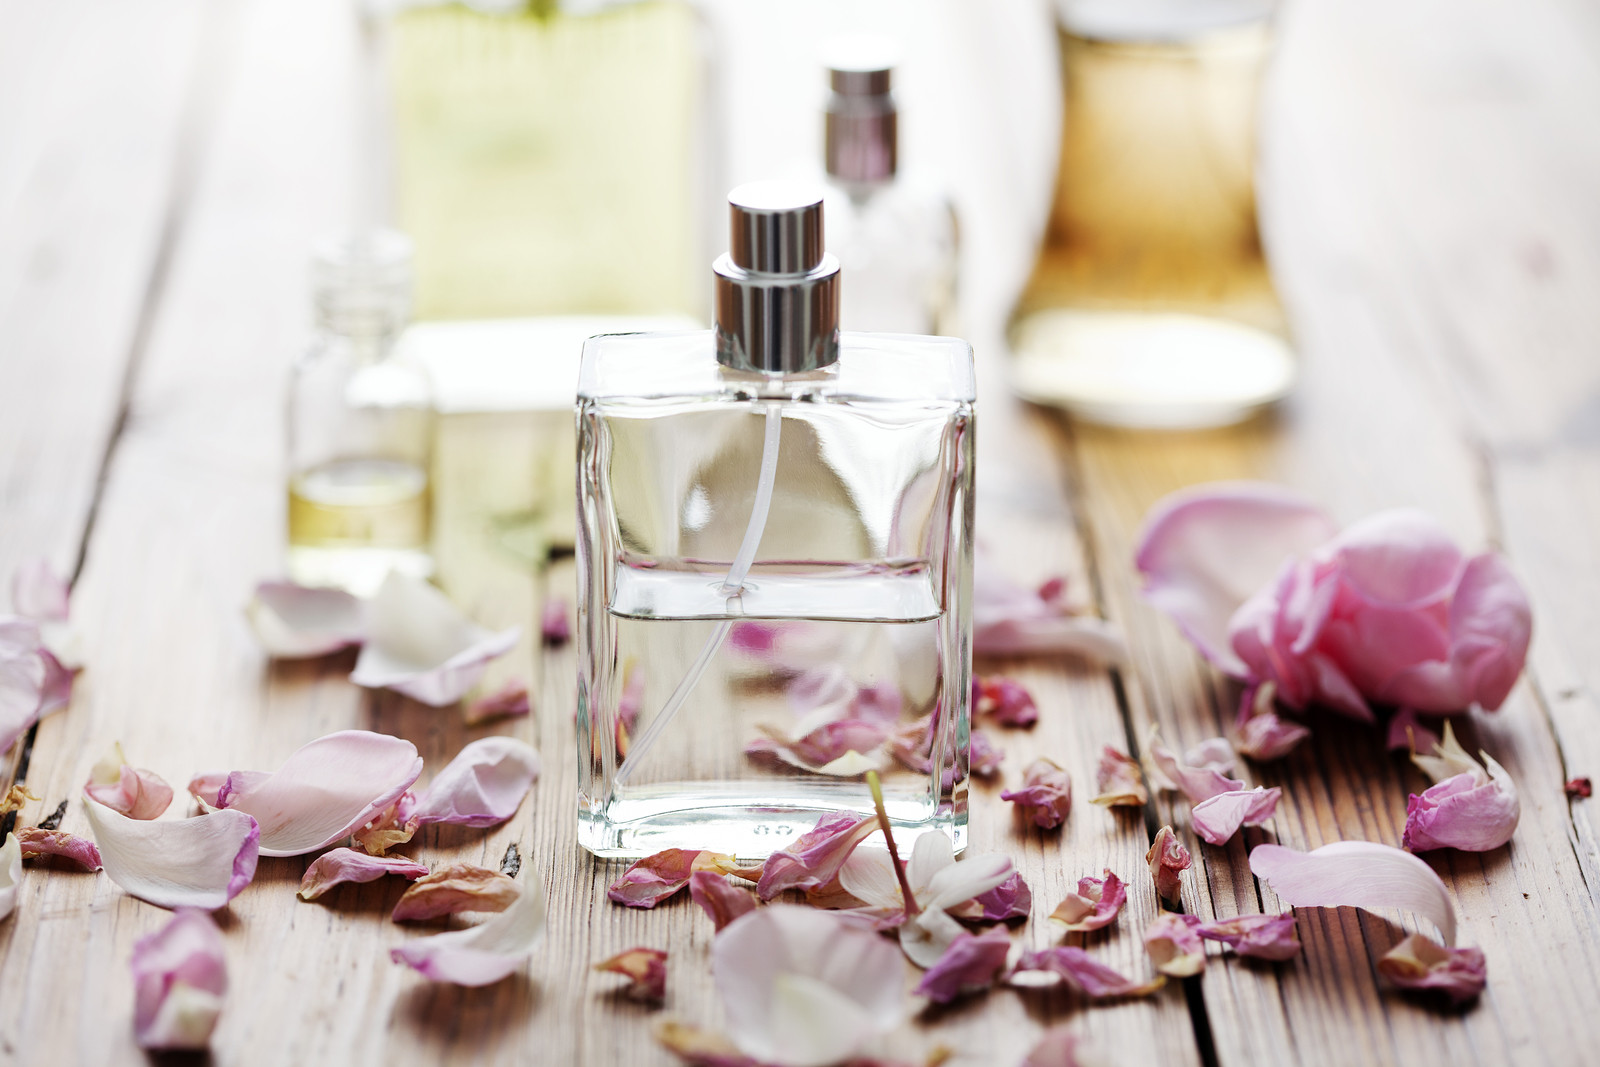 selection of natural perfume bottles surrounded by flower petals